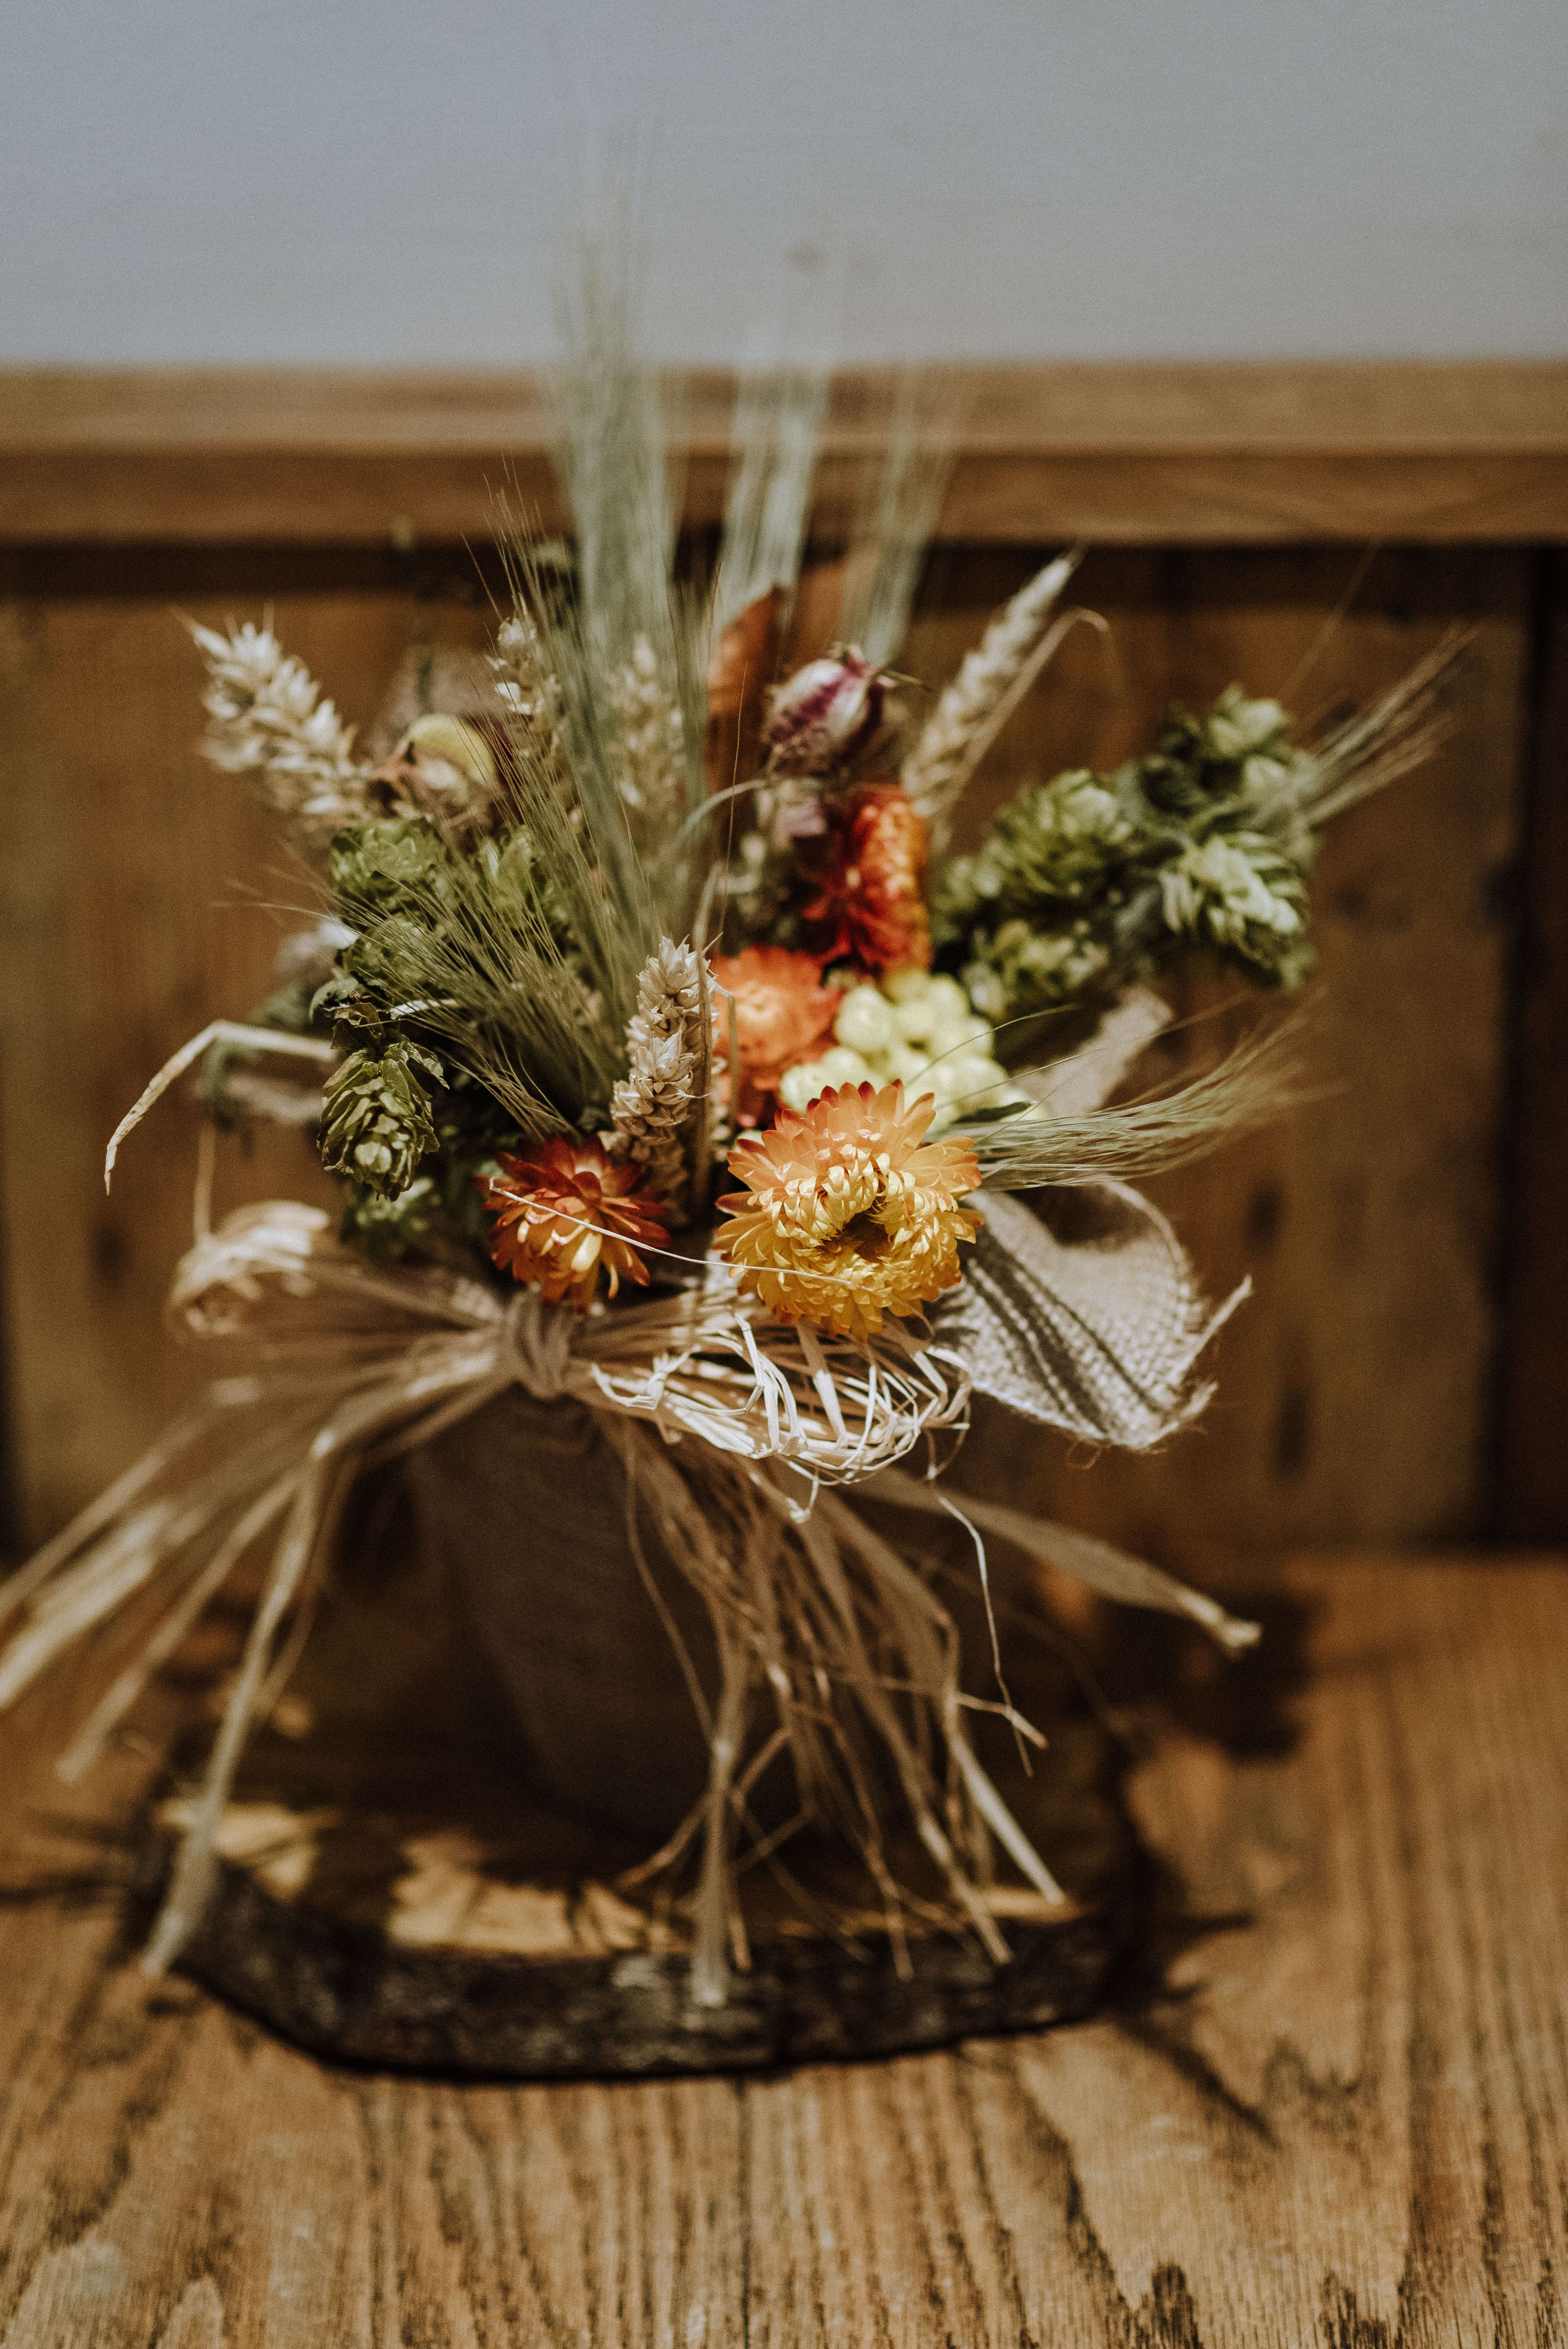 Autumn Dried Flower Table Arrangement With Thanks To Nick Walker Photography Table Flowers Dried Flowers Table Arrangements